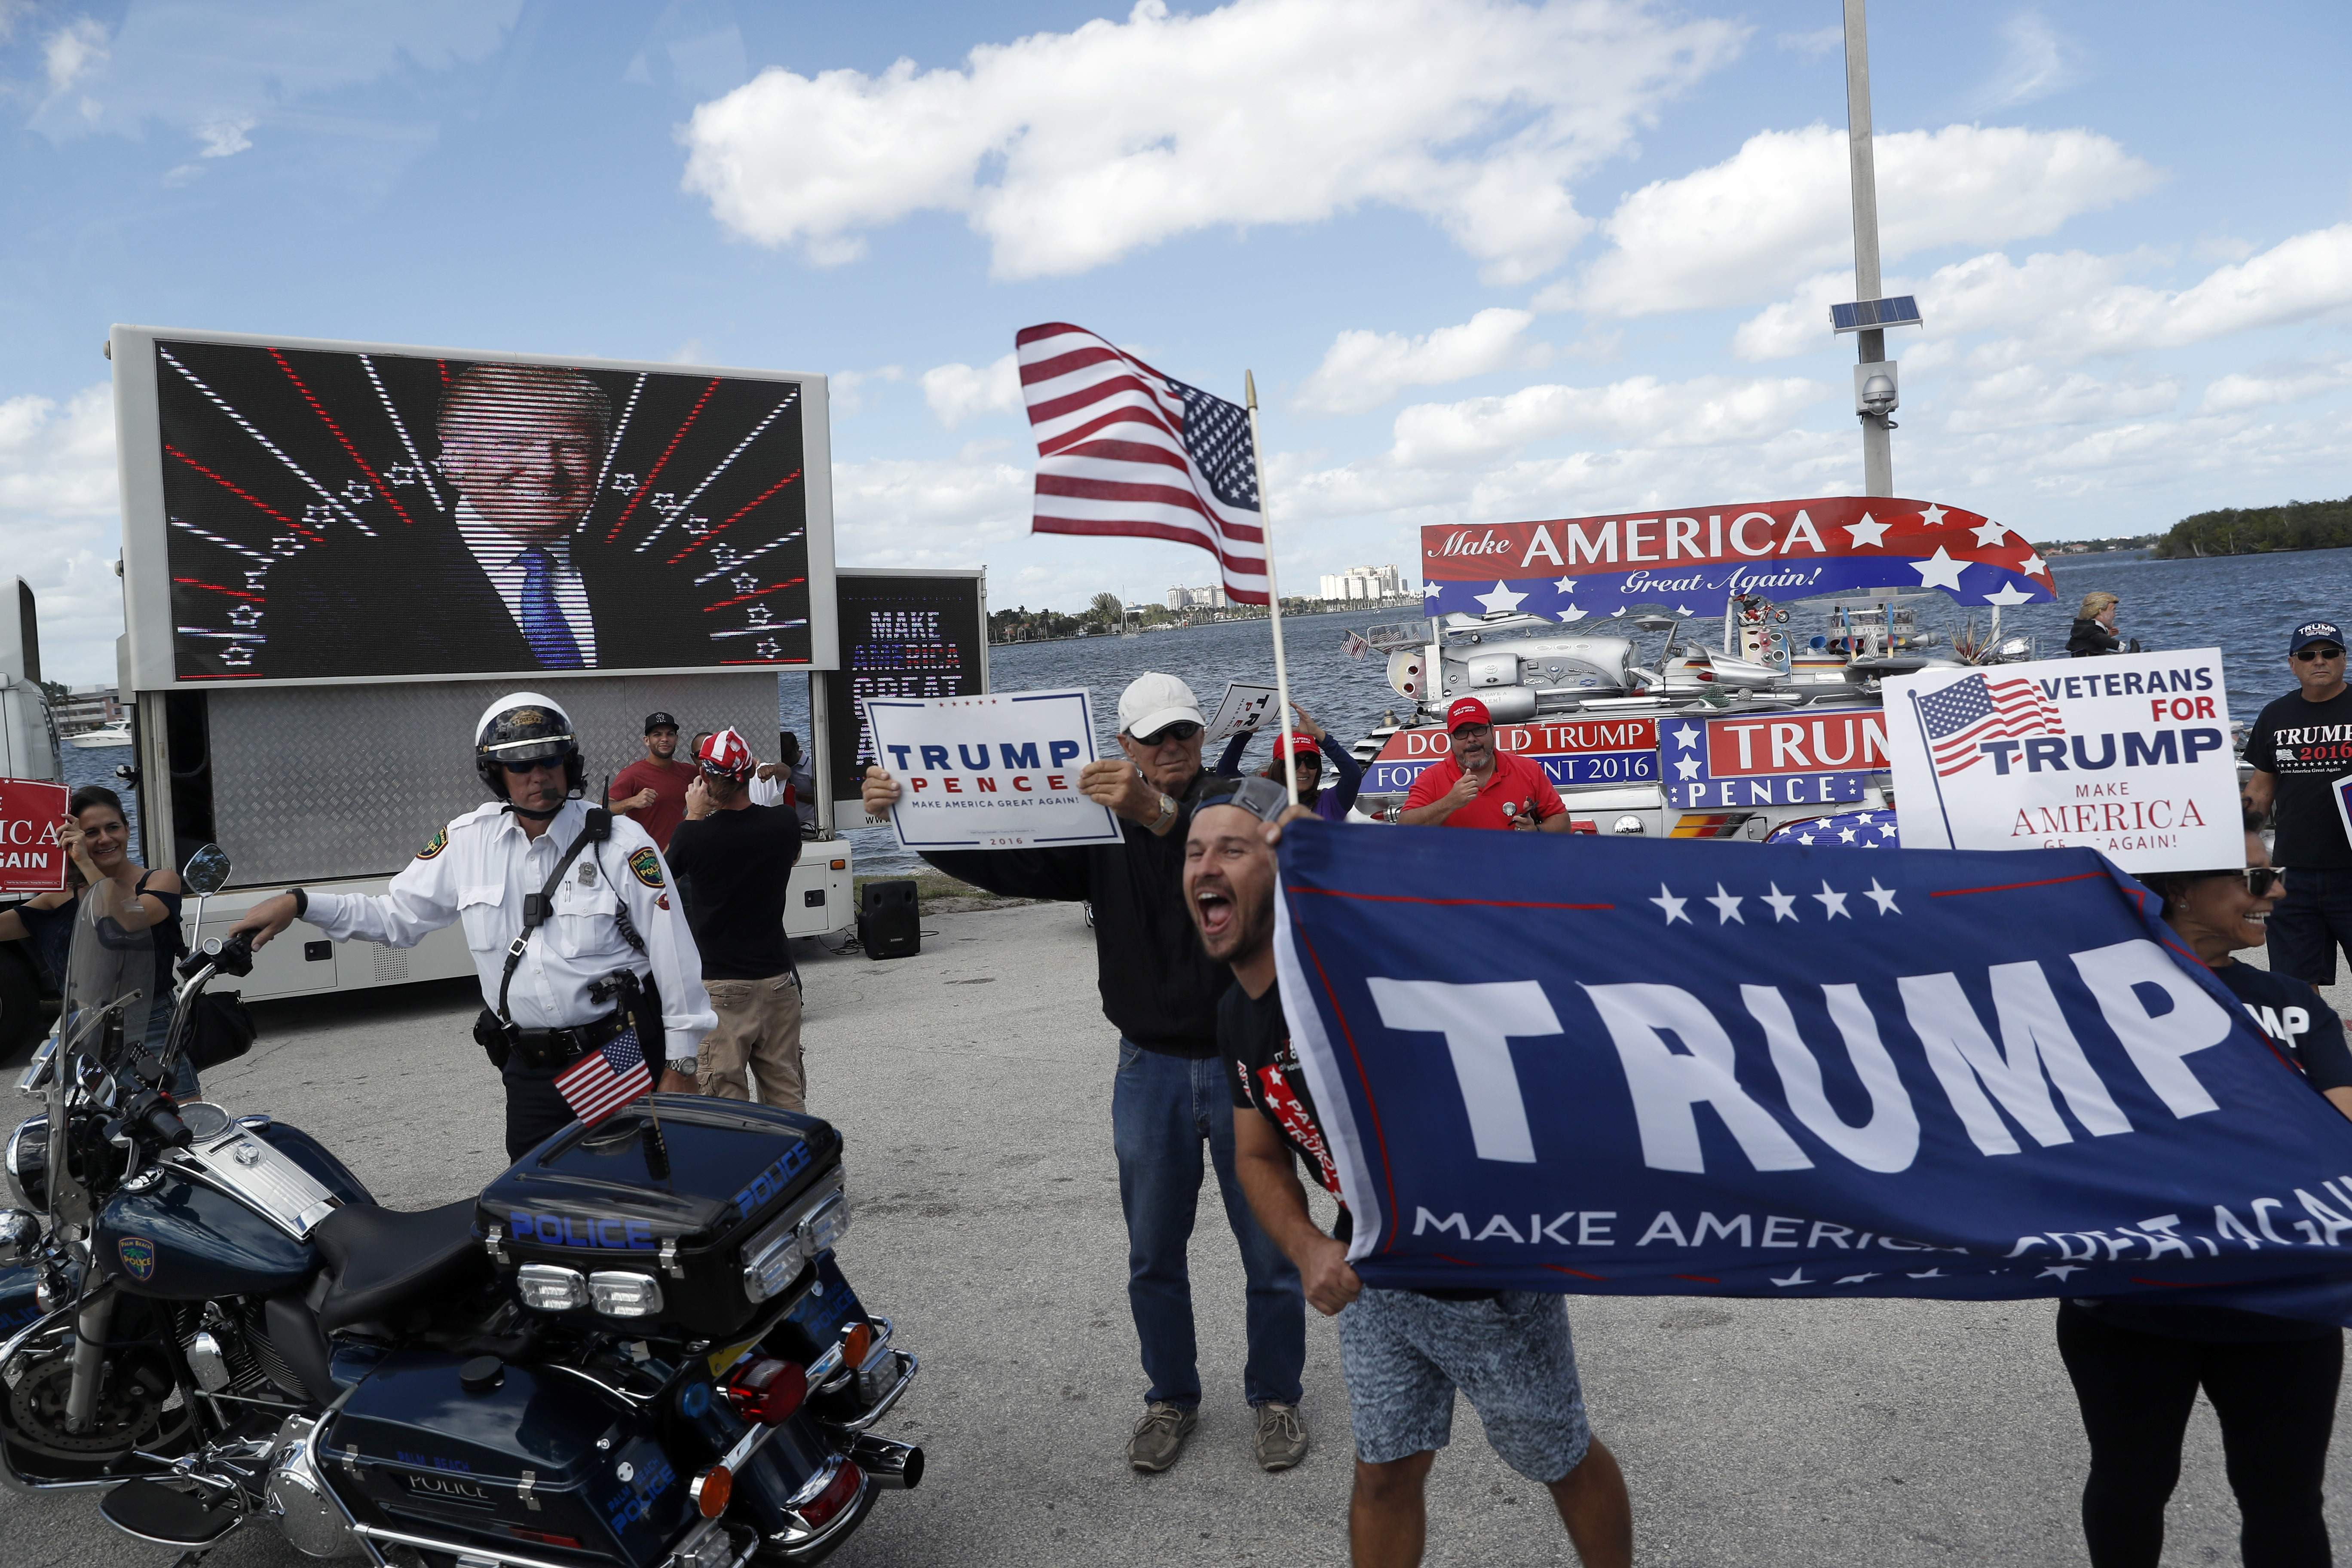 DAY 44 - In this March 4, 2017, file photo supporters of President Donald Trump gather outside Mar-a-Lago in Palm Beach, Fla., where President Donald Trump is spending the weekend. While at Mar-a-Lago, the president did not have any events that were open for media coverage and was not photographed on day 44. (AP Photo/Alex Brandon, File)